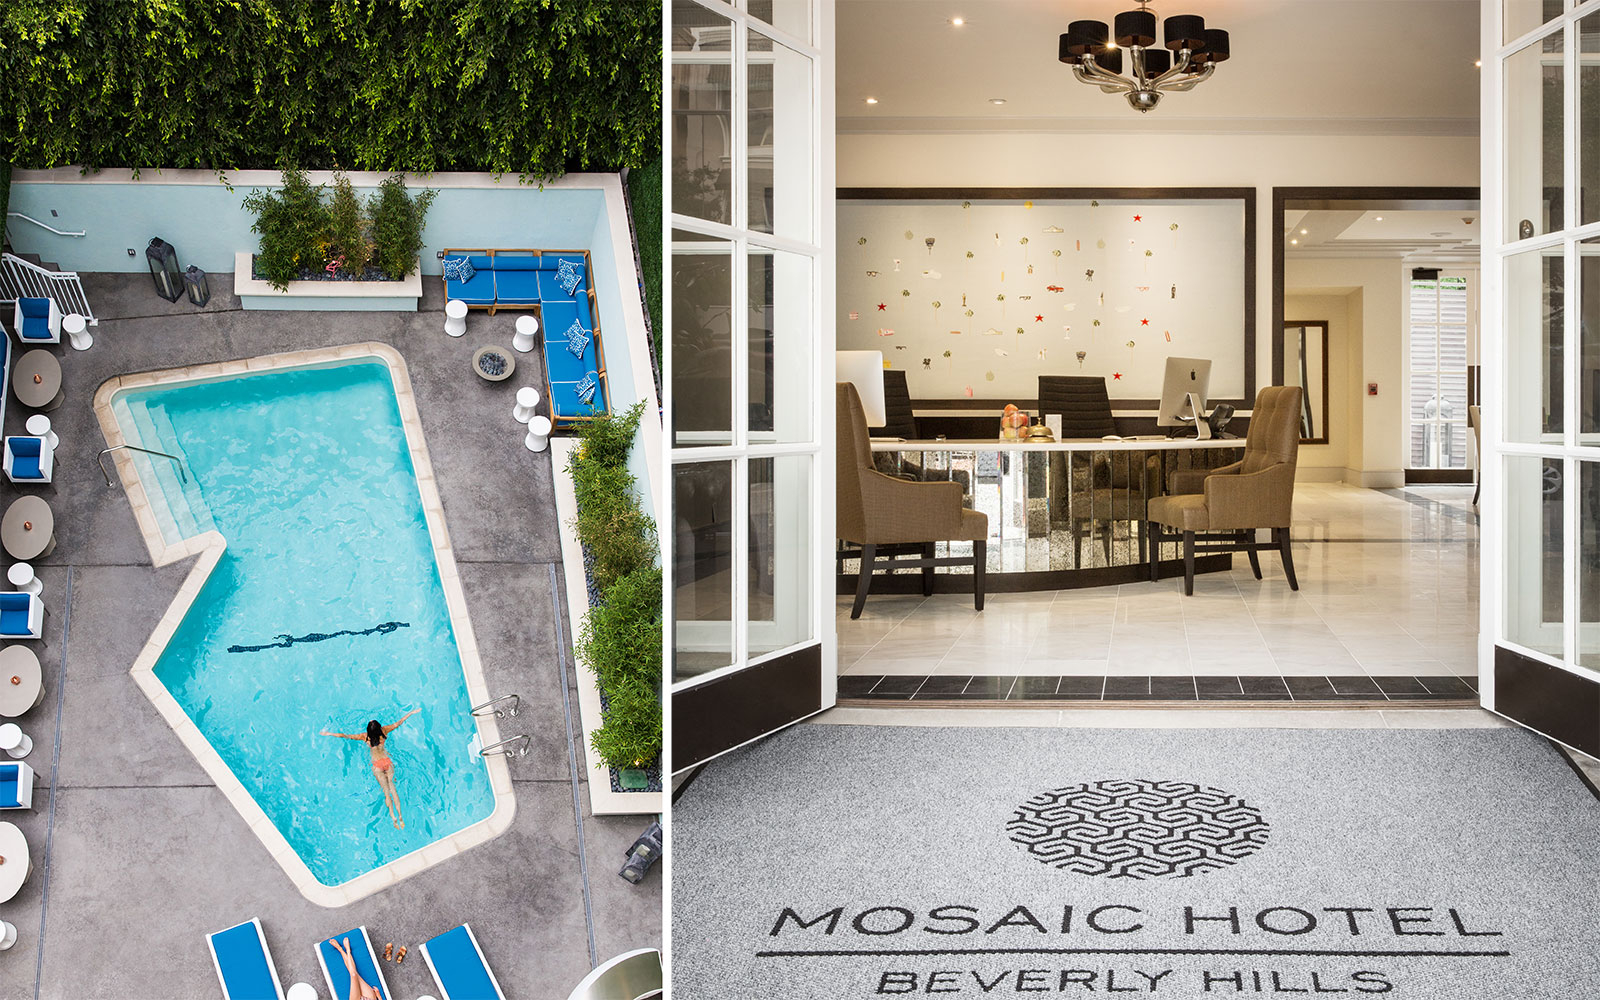 beverly hills's mosaic hotel completes renovation | travel + leisure